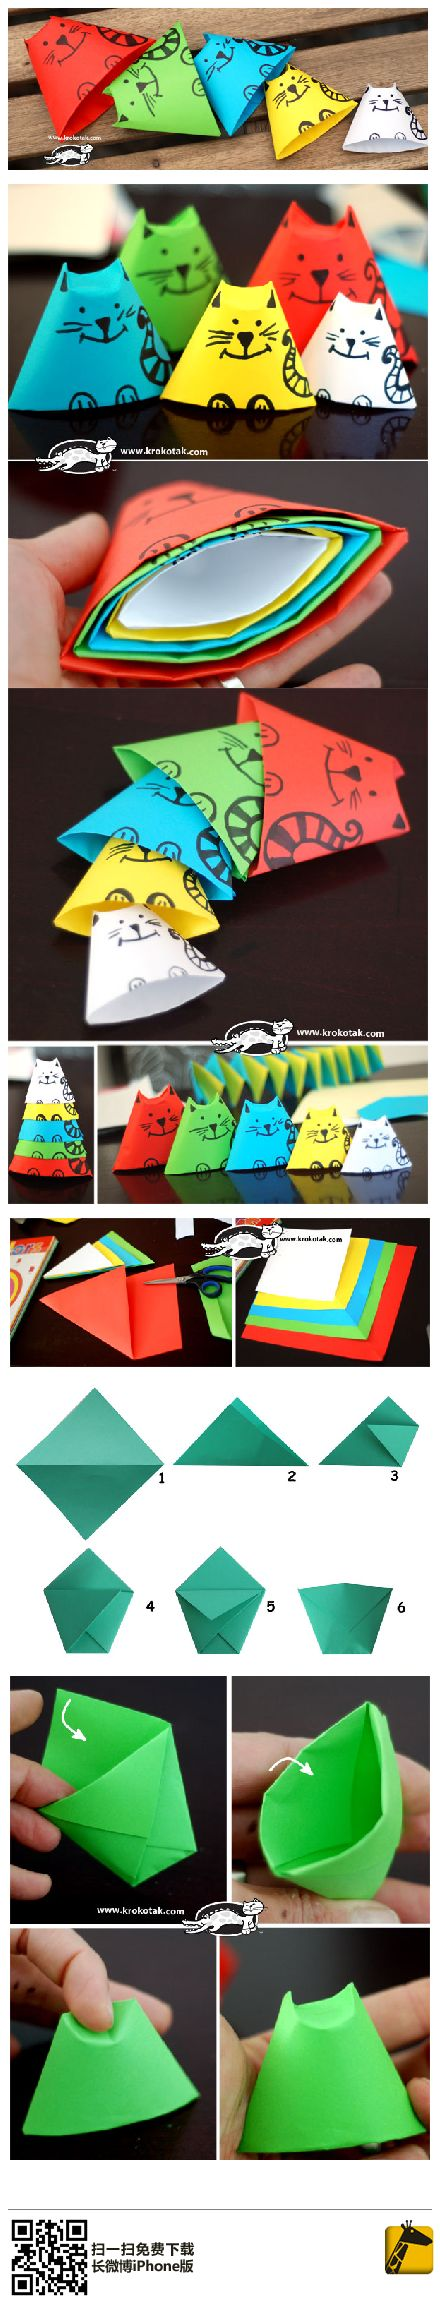 Kitty nesting dolls made out of paper